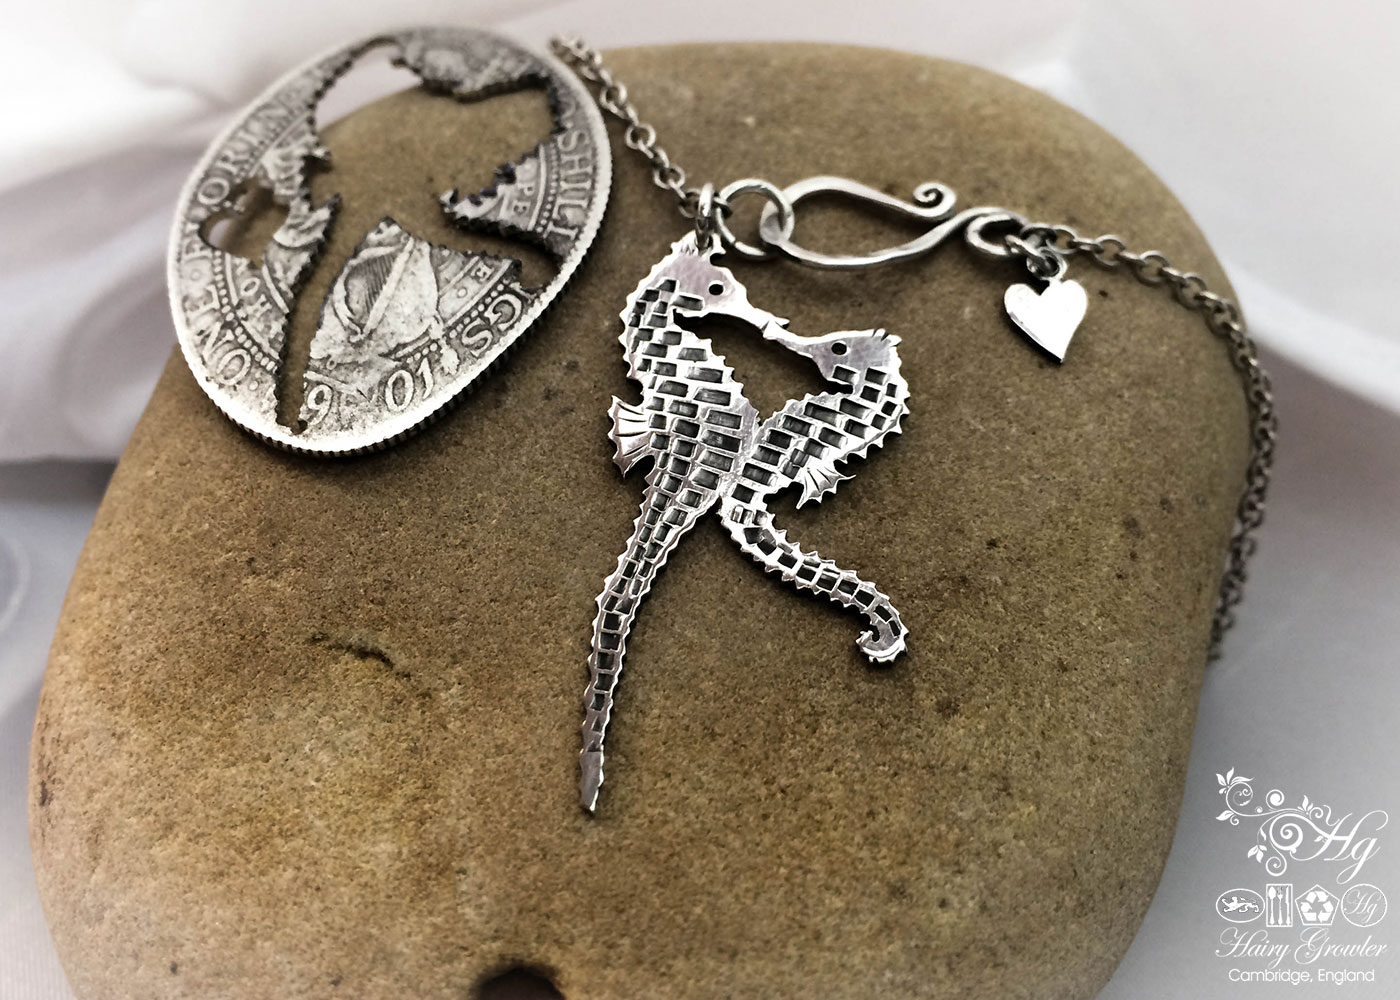 seahorse jewellery hand made and upcycled silver coin seahorses in love necklace